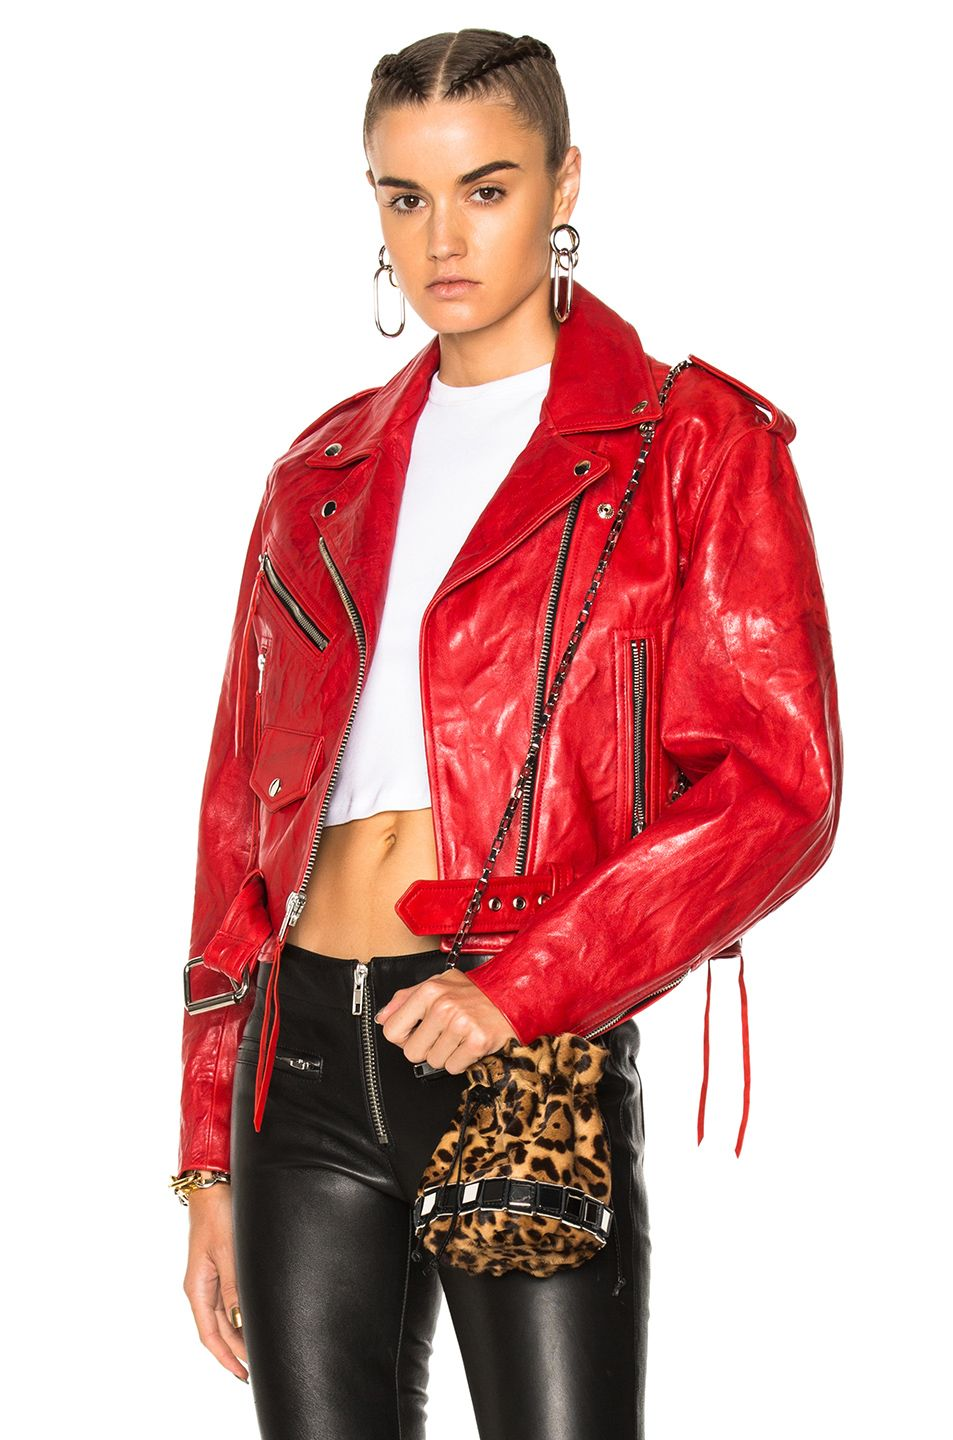 Pin By Neomi Zvi On Leather Project Inspiration Board Jackets Leather Moto Jacket Moto Jacket [ 1440 x 953 Pixel ]